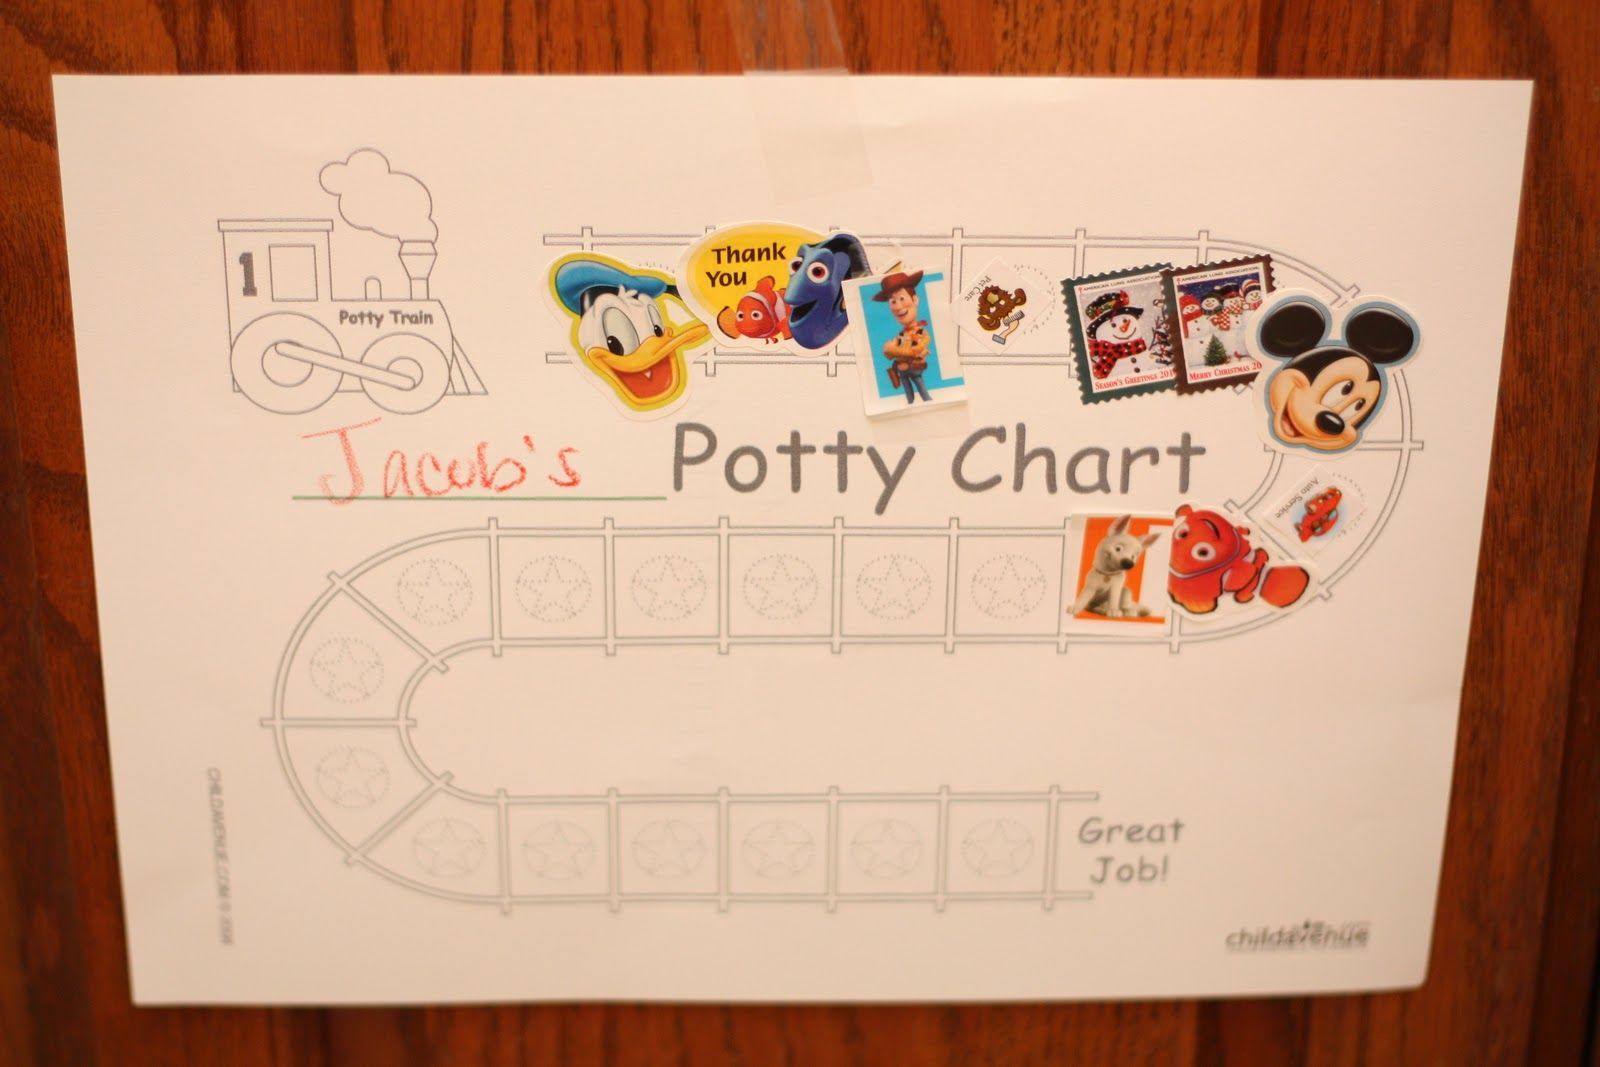 potty train chart idea, reward at end of track